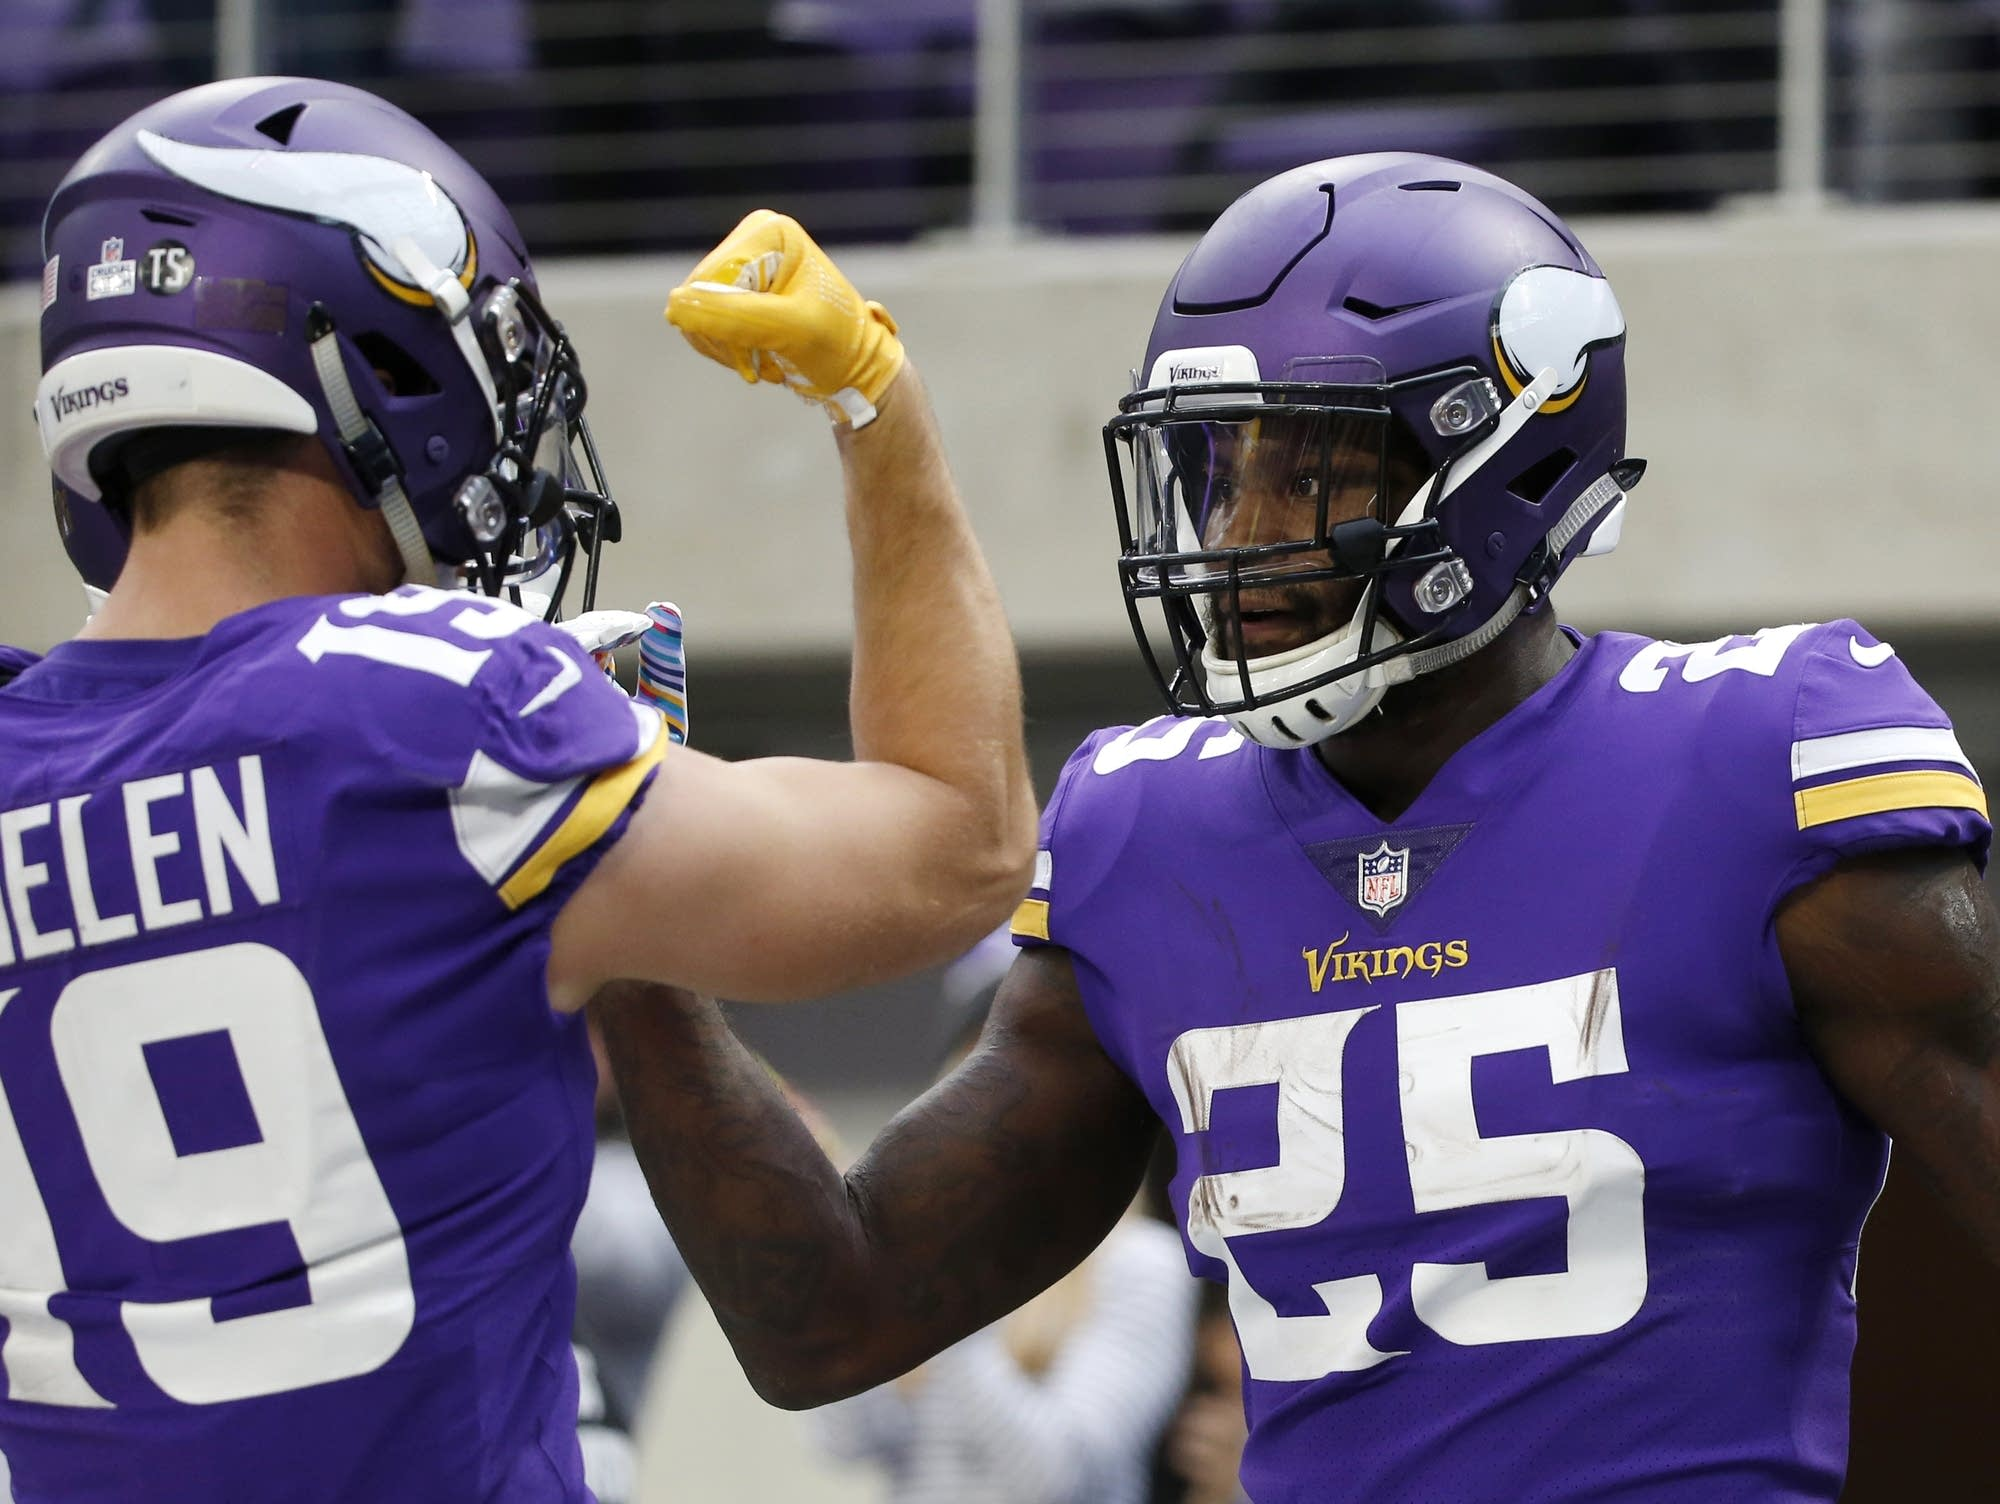 NFC North Roundup – Overtime in Miami, Vikings Dominant, Shoot-Out in Wisconsin